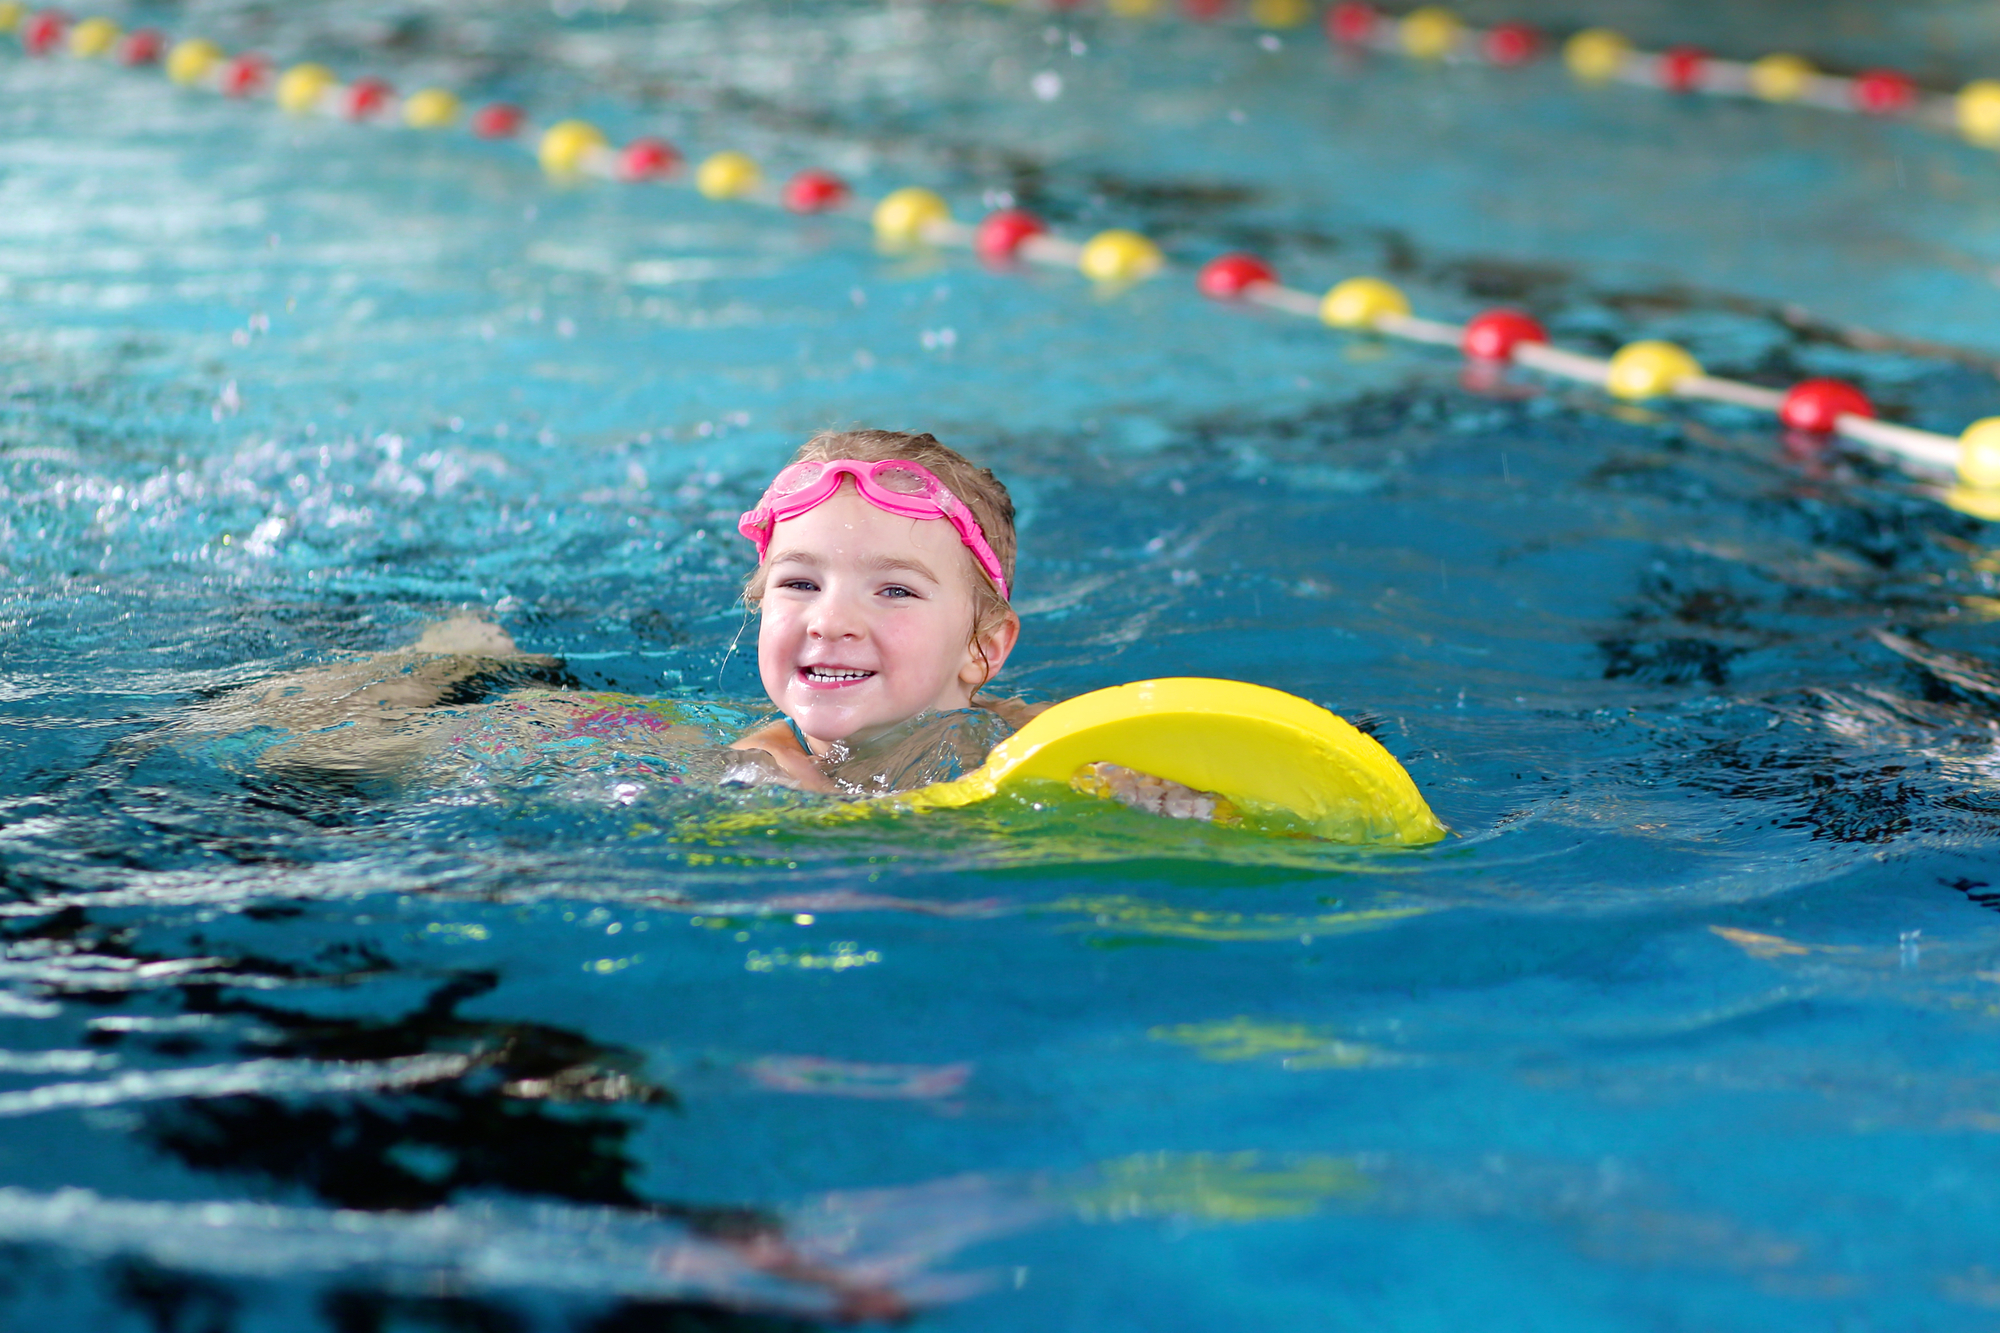 FRONTIER SWIMMING LESSONS - We provide high quality swimming lessons for babies, children and adults. Keeping them fun and interesting whilst promoting good technique. Swimming is beneficial to a child's development and an essential survival skill. We believe in guided exploration and game oriented learning, our instructors have the knowledge and background to ensure your child learns properly.